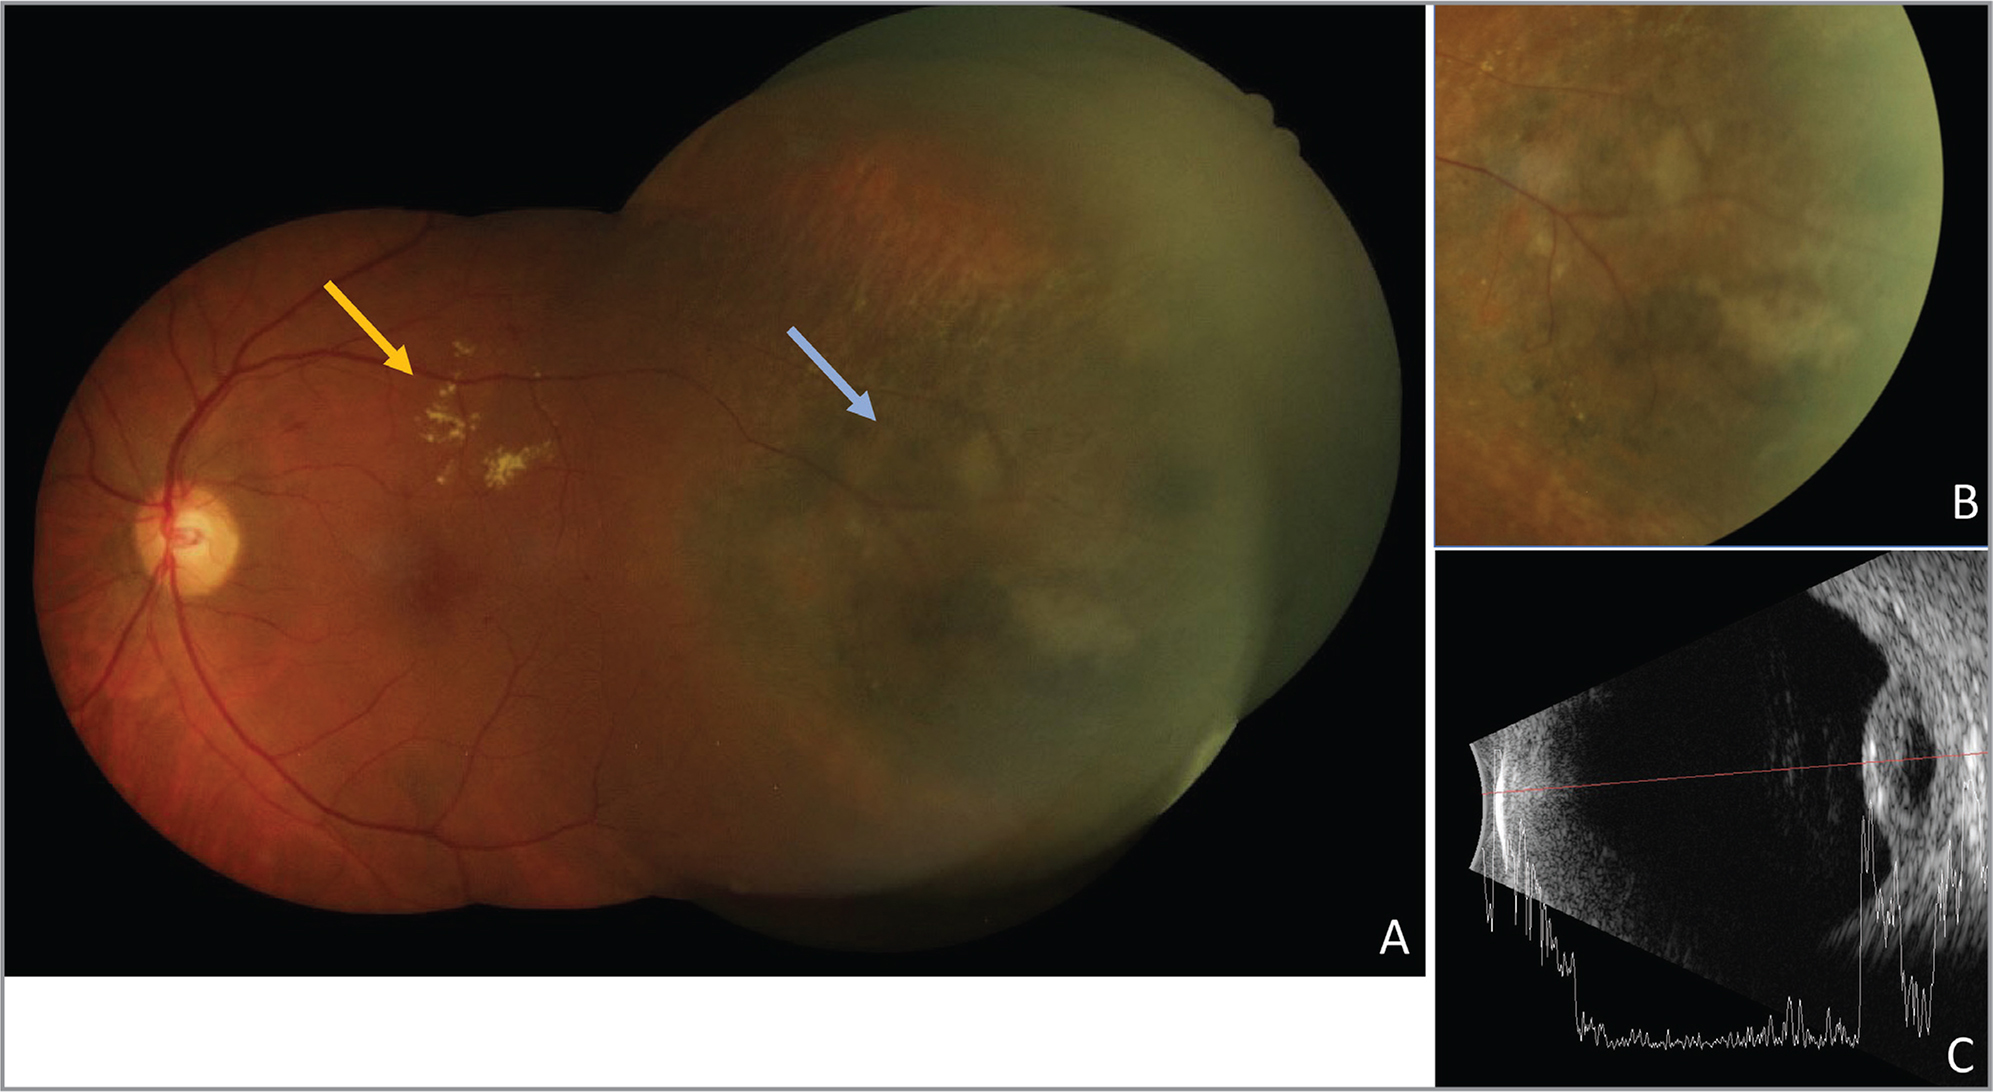 Fundus photographs (A, B) of a 77-year-old female with choroidal melanoma. The patient presented with slowly progressive, painless vision loss. The exam was significant for subretinal fluid and exudates (yellow arrow), as well as a dome-shaped choroidal lesion temporally (blue arrow). (C) The A-scan revealed the low internal reflectivity that is classic in choroidal melanoma.